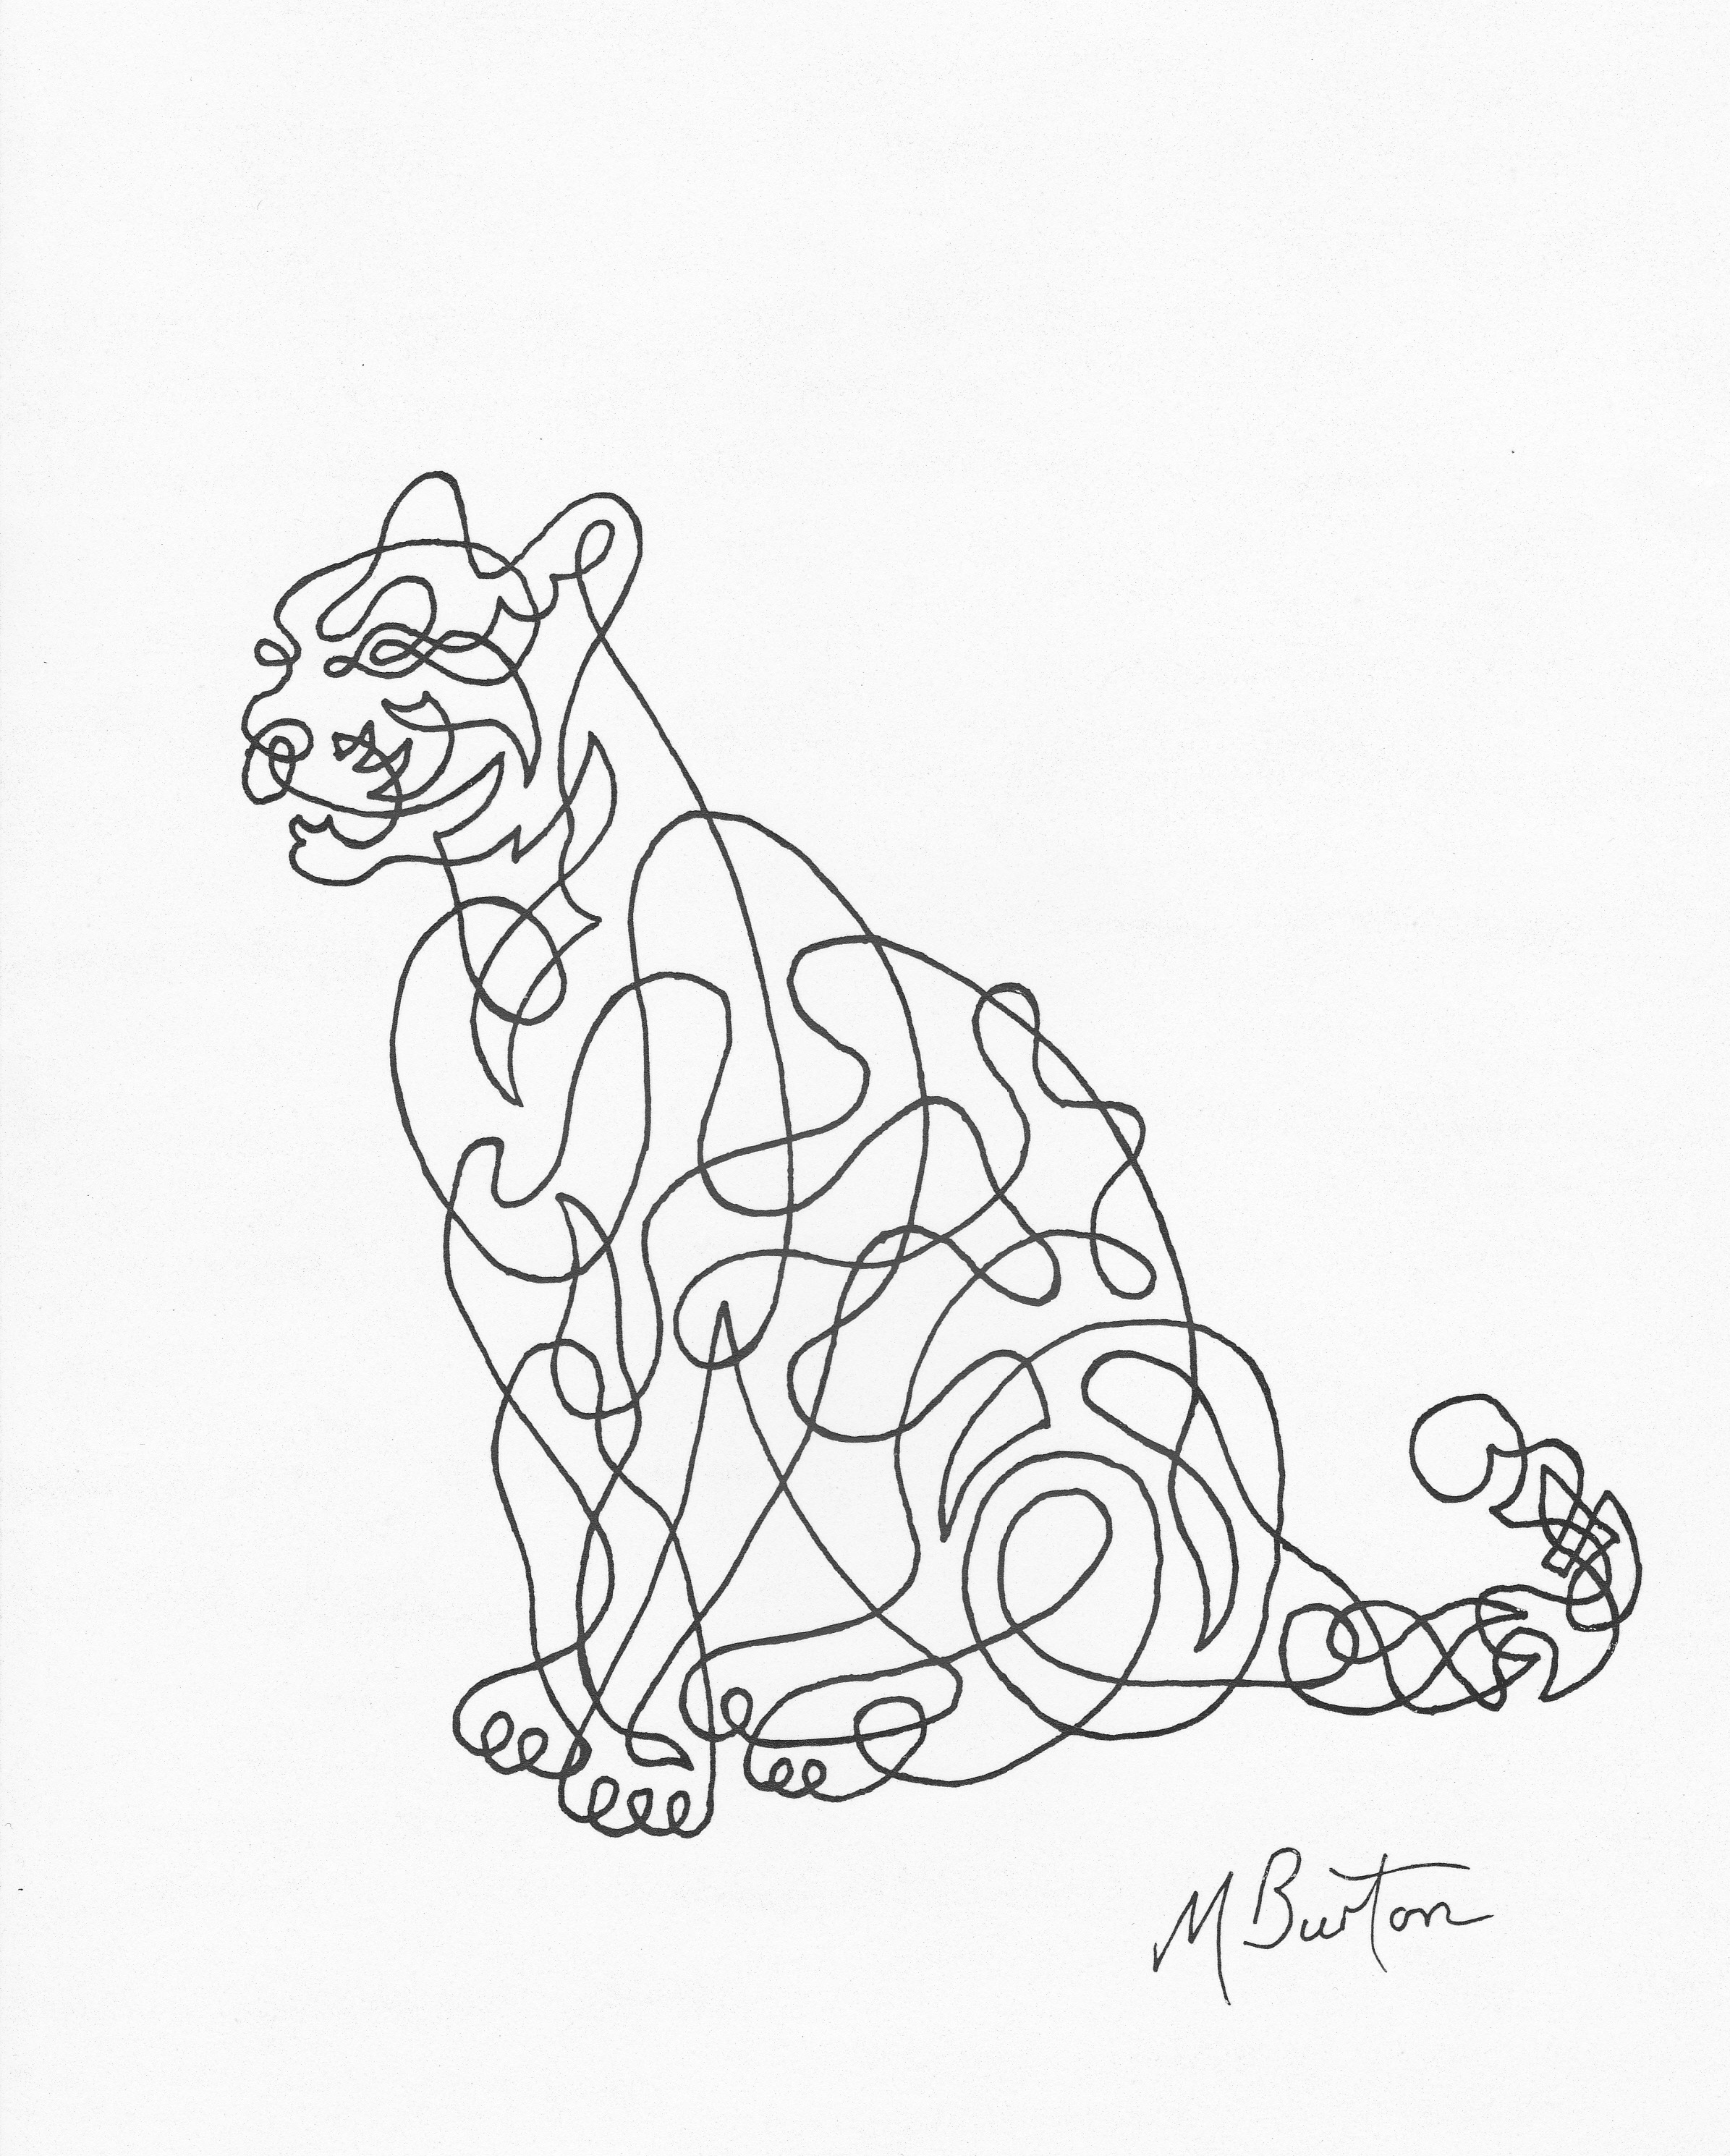 Line Drawing : Mick burton continuous line drawing page